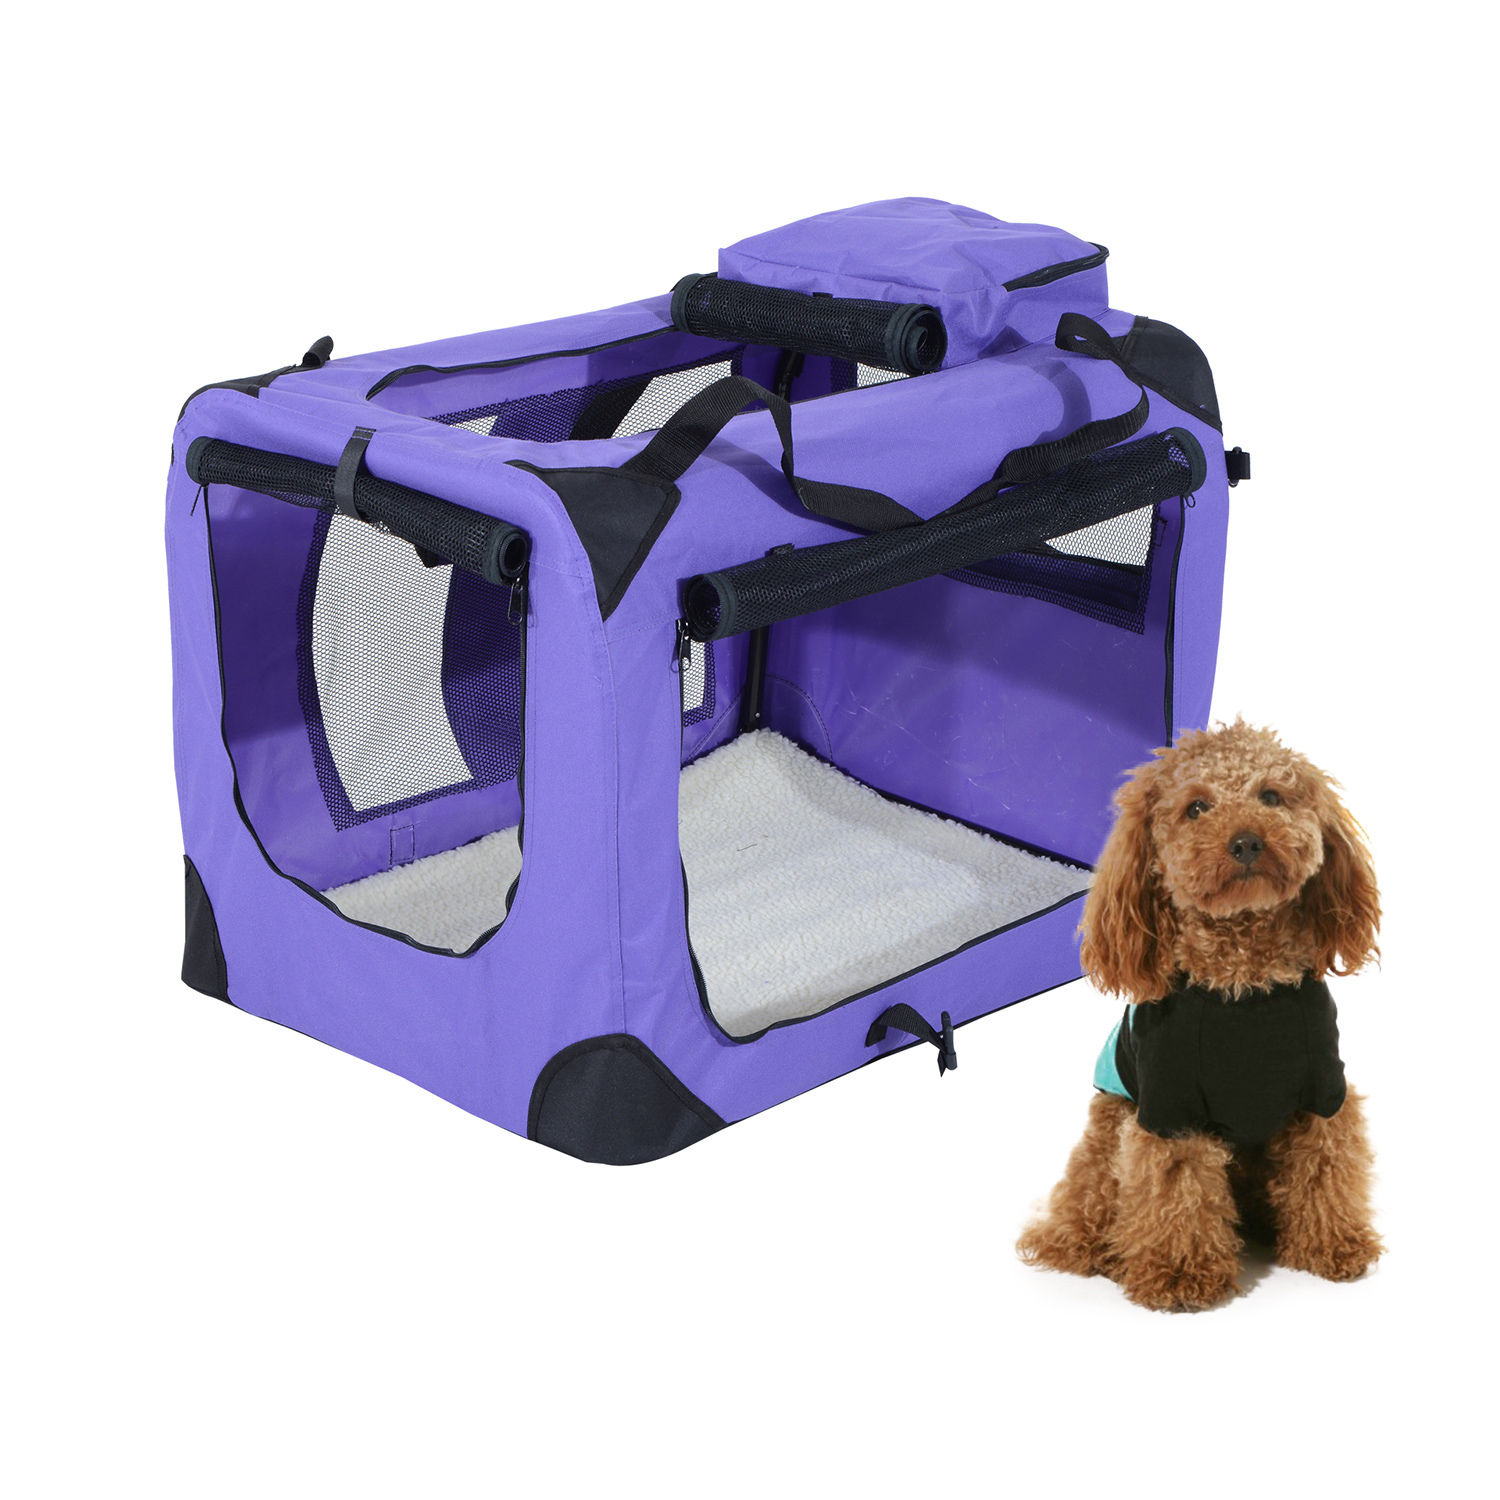 Pretty Inch Soft Sided Fing Crate Pet Carrier Purple Inch Soft Sided Fing Crate Pet Carrier Soft Sided Dog Crate Amazon Soft Sided Dog Crate Petco bark post Soft Sided Dog Crate